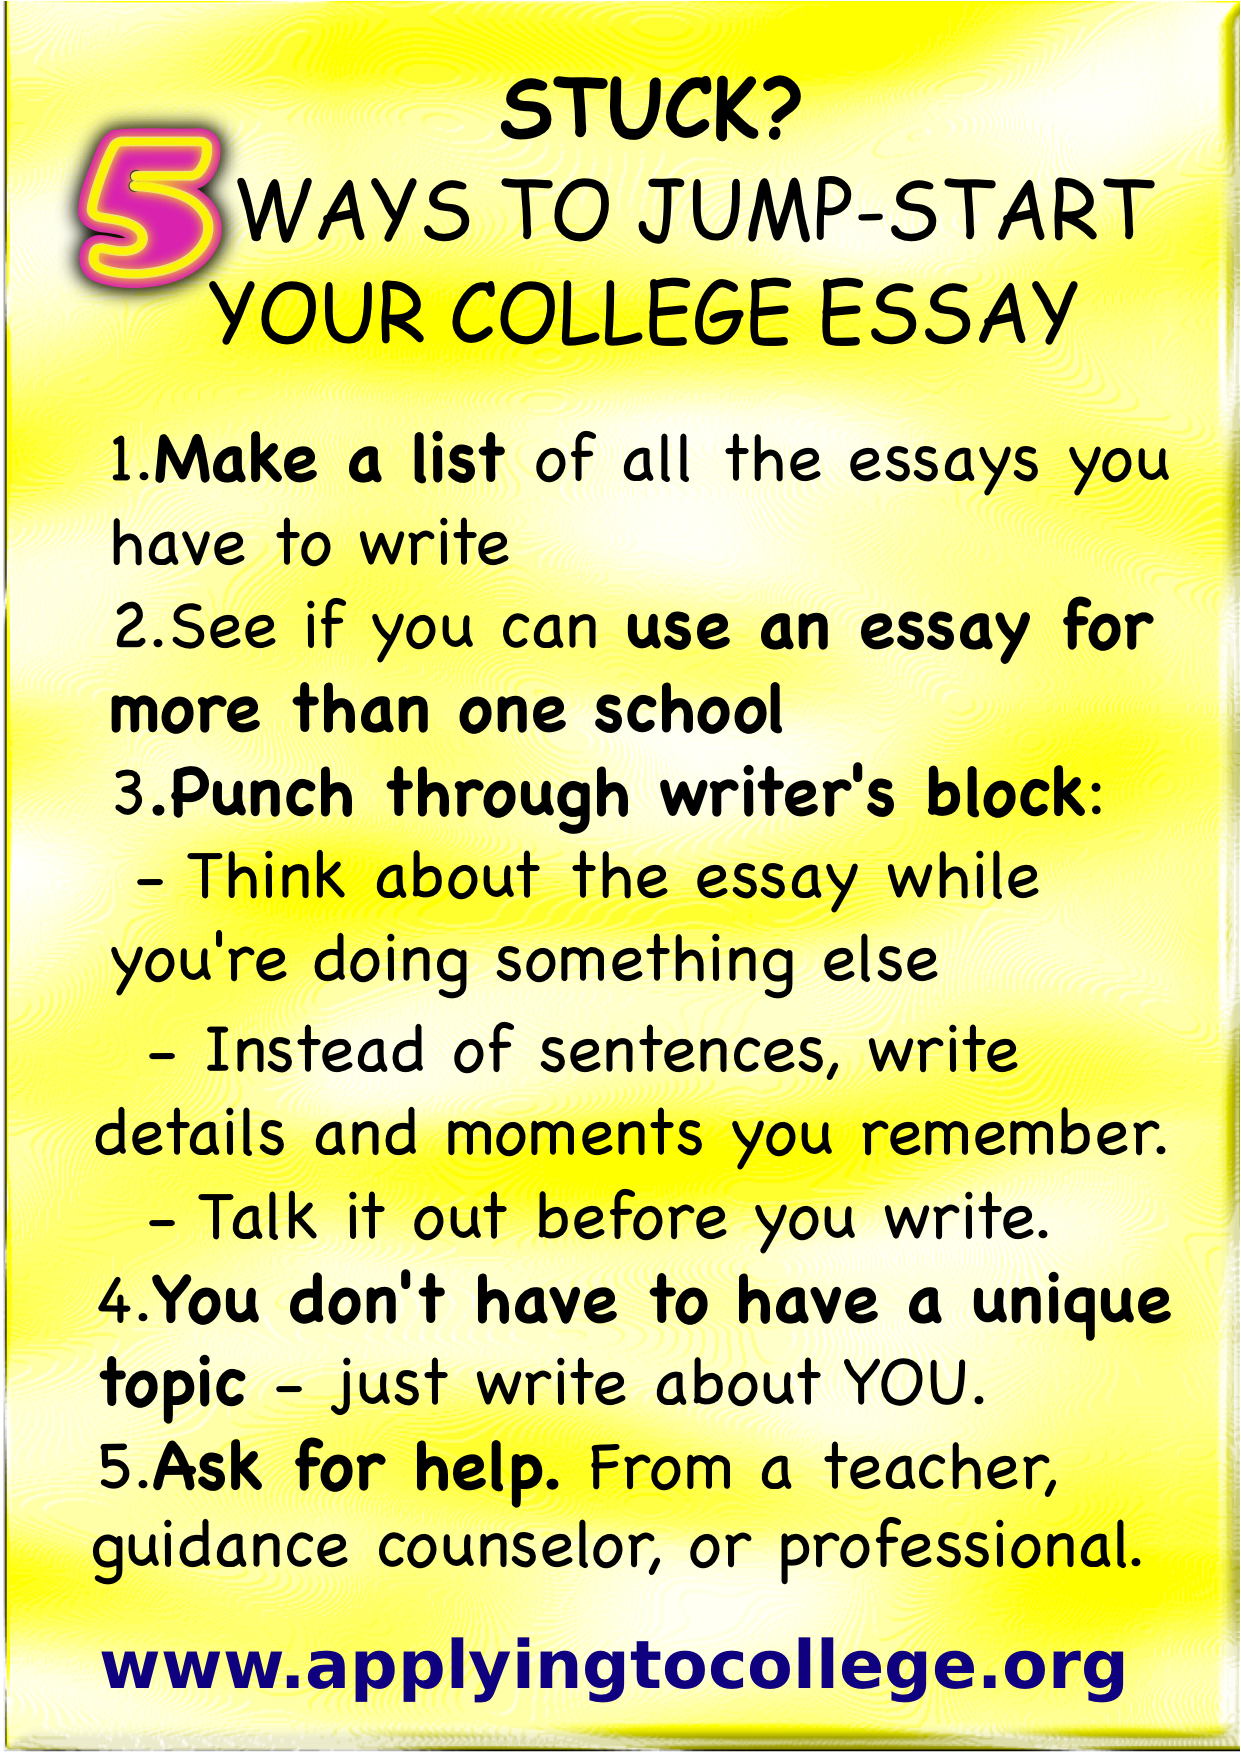 College application essay writers how to starting